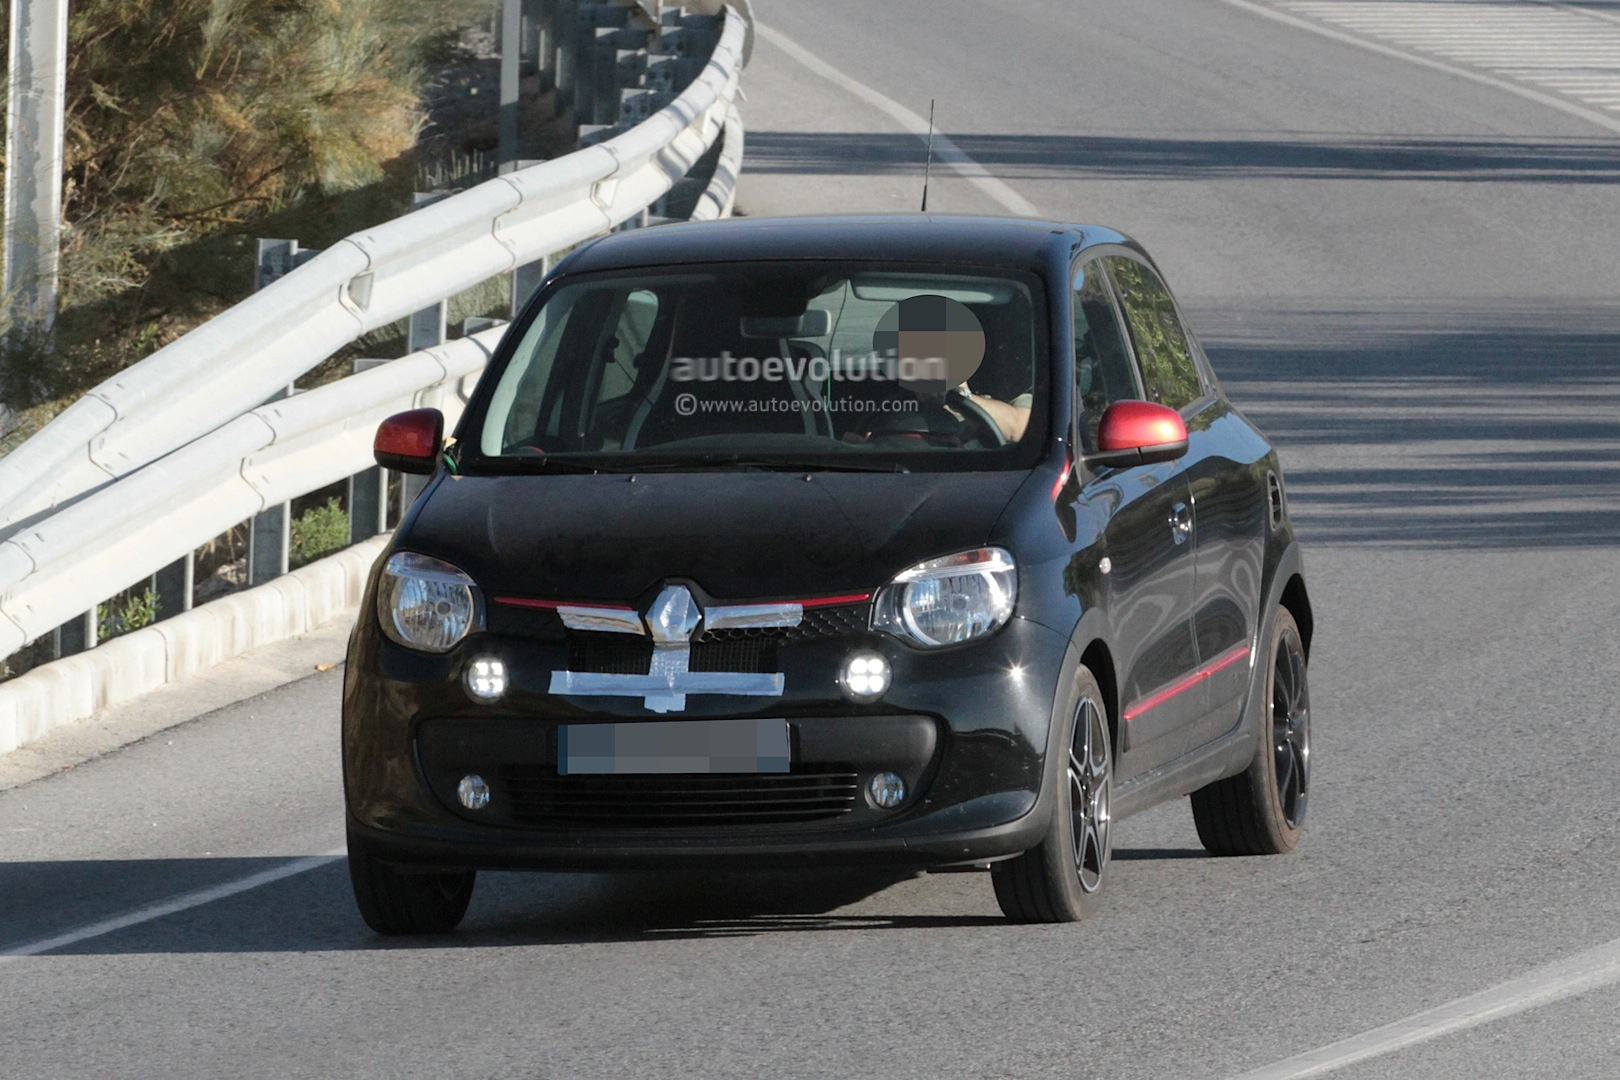 2015 Renault Twingo RS First Photos - photo gallery